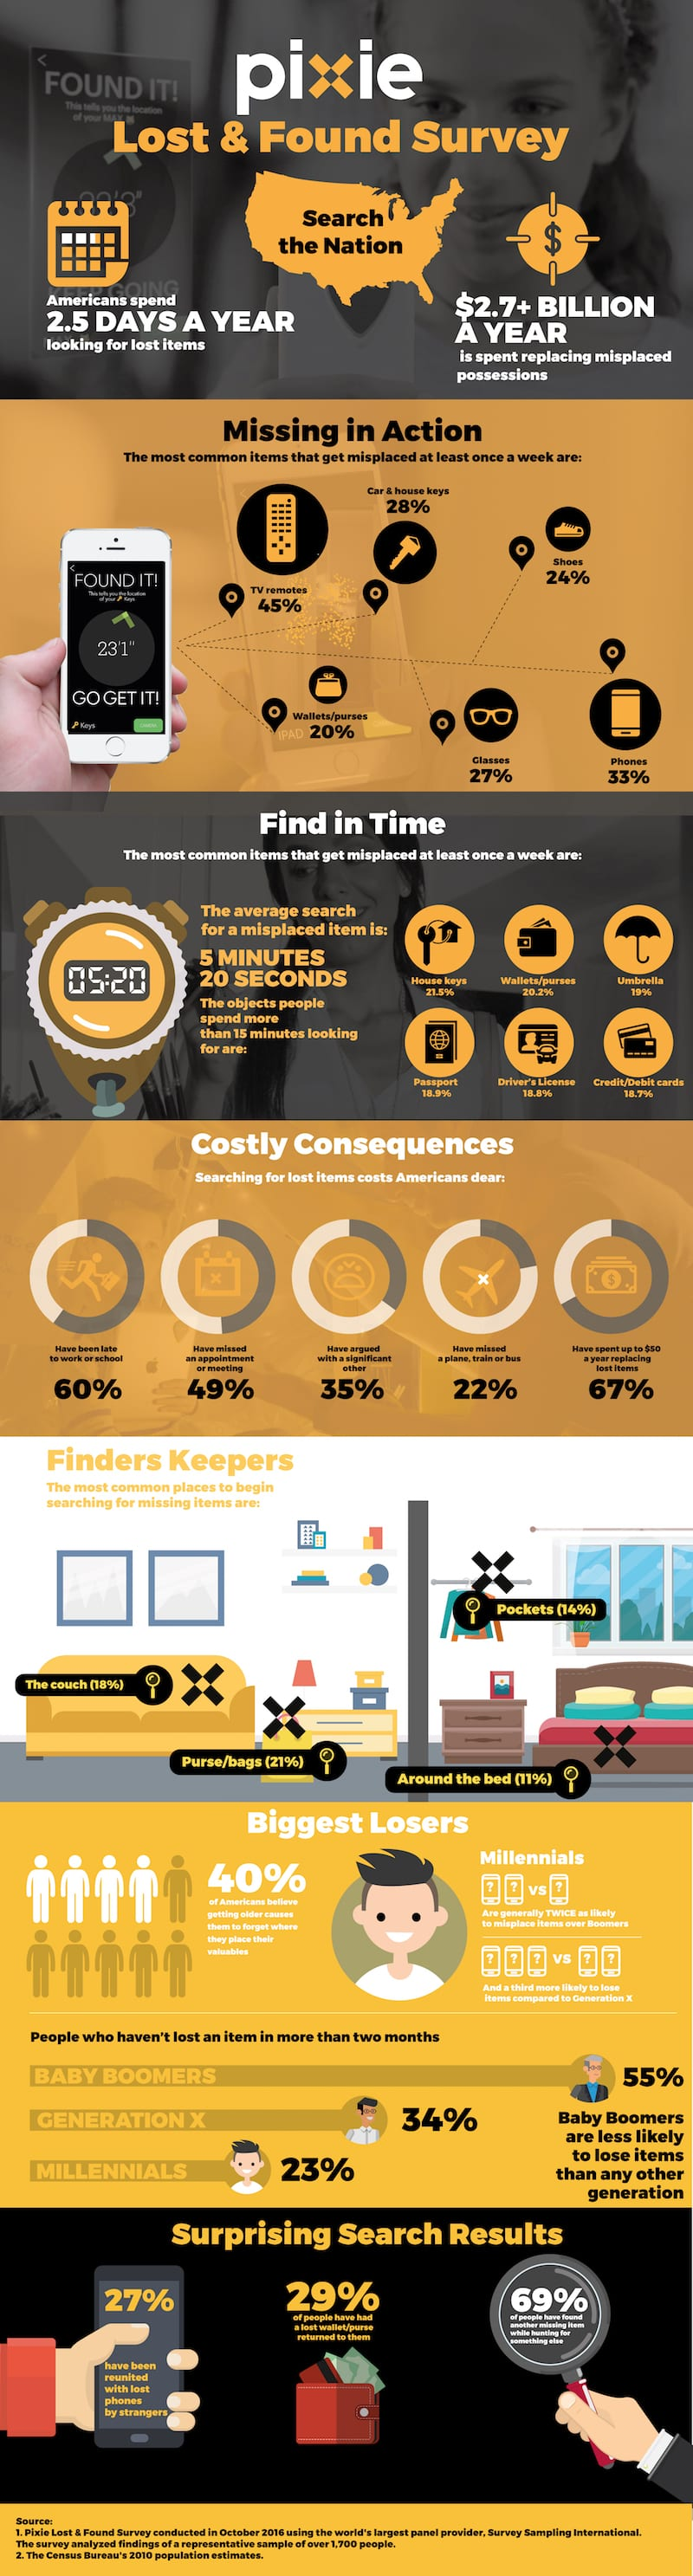 Pixie Lost & Found infographic